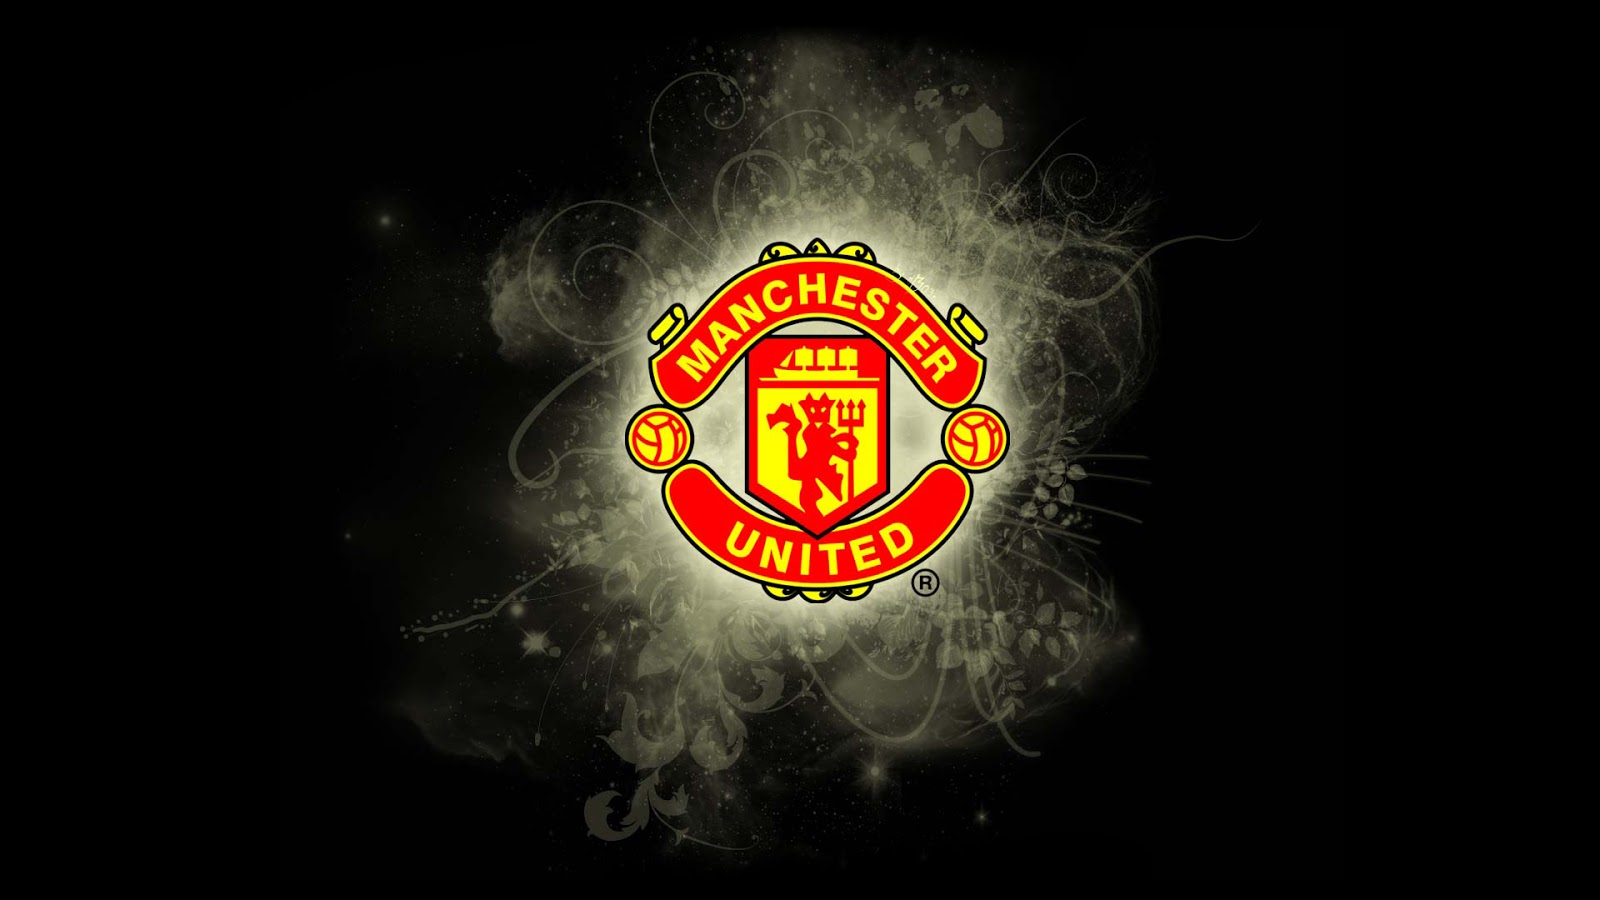 Manchester United 2013 Wallpapers 2013 HD 1600x900